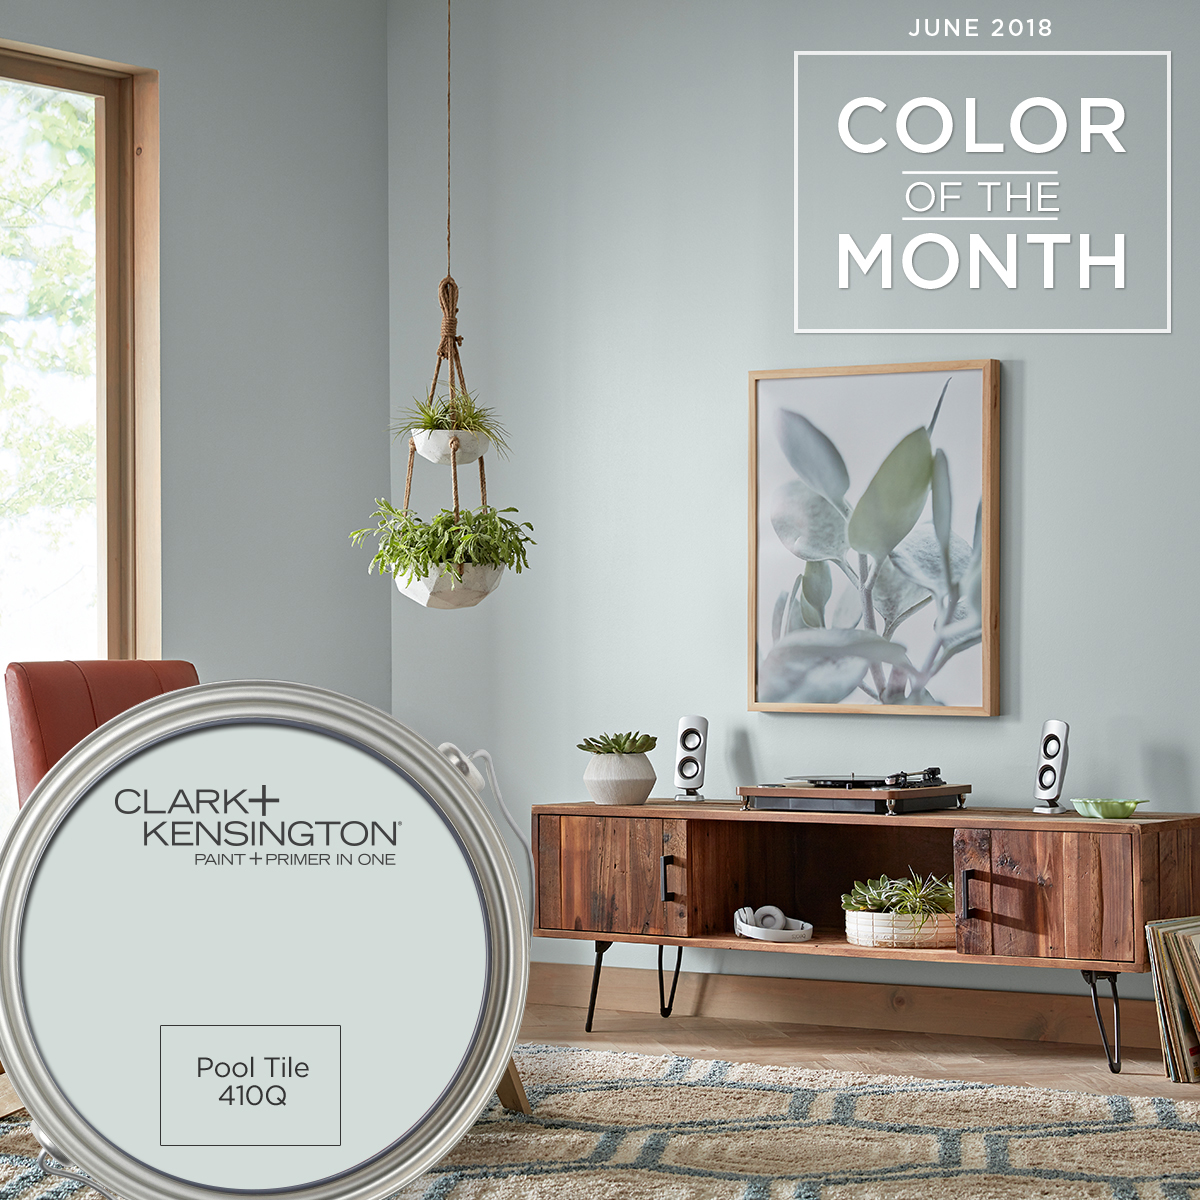 June 2018 color of the month.jpg